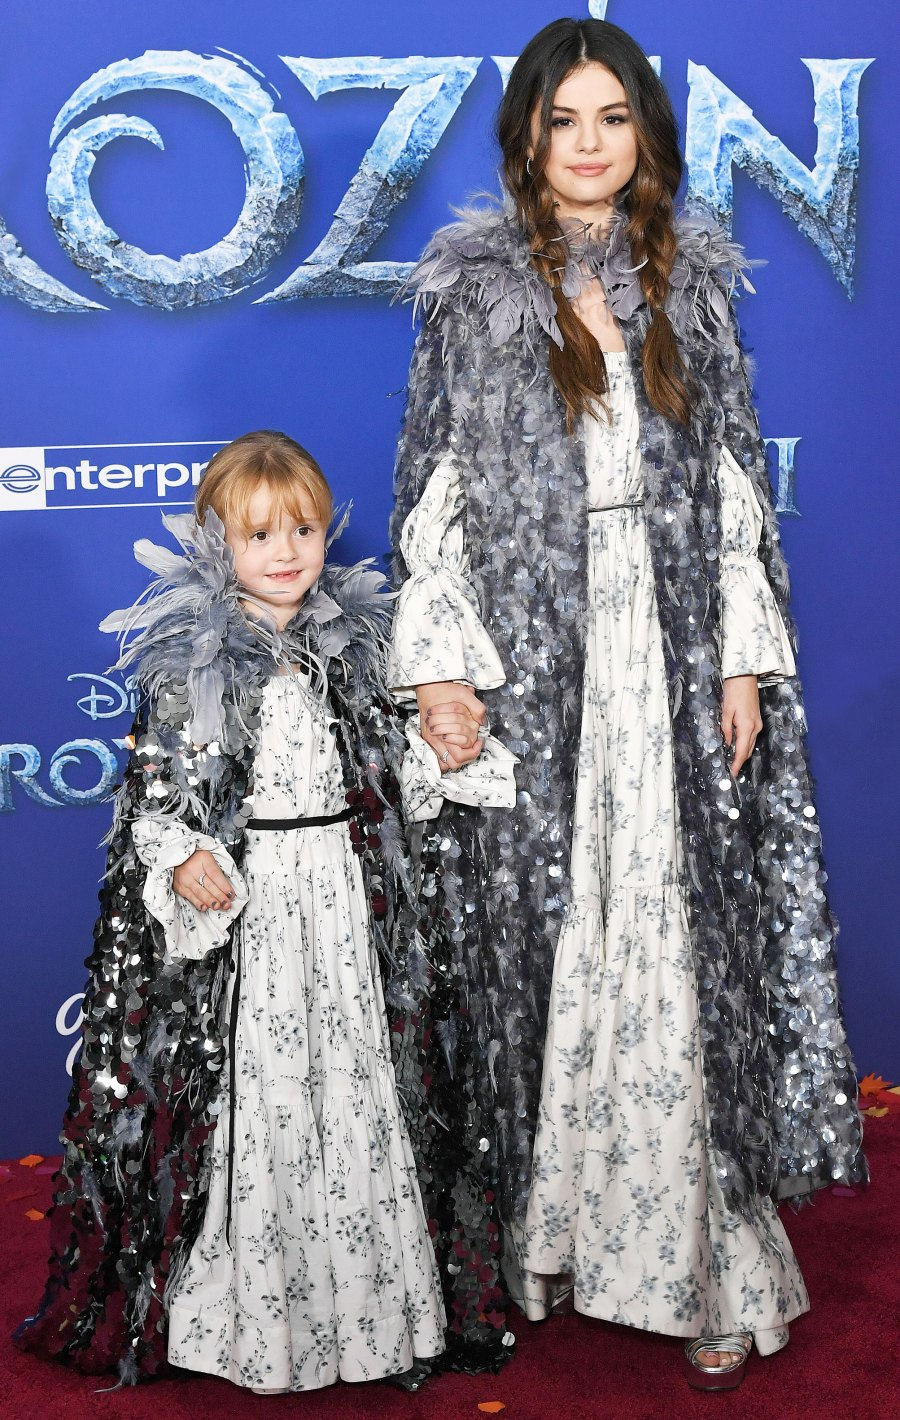 Selena Gomez Twins with Little Sister Gracie at the Frozen 2 Premiere